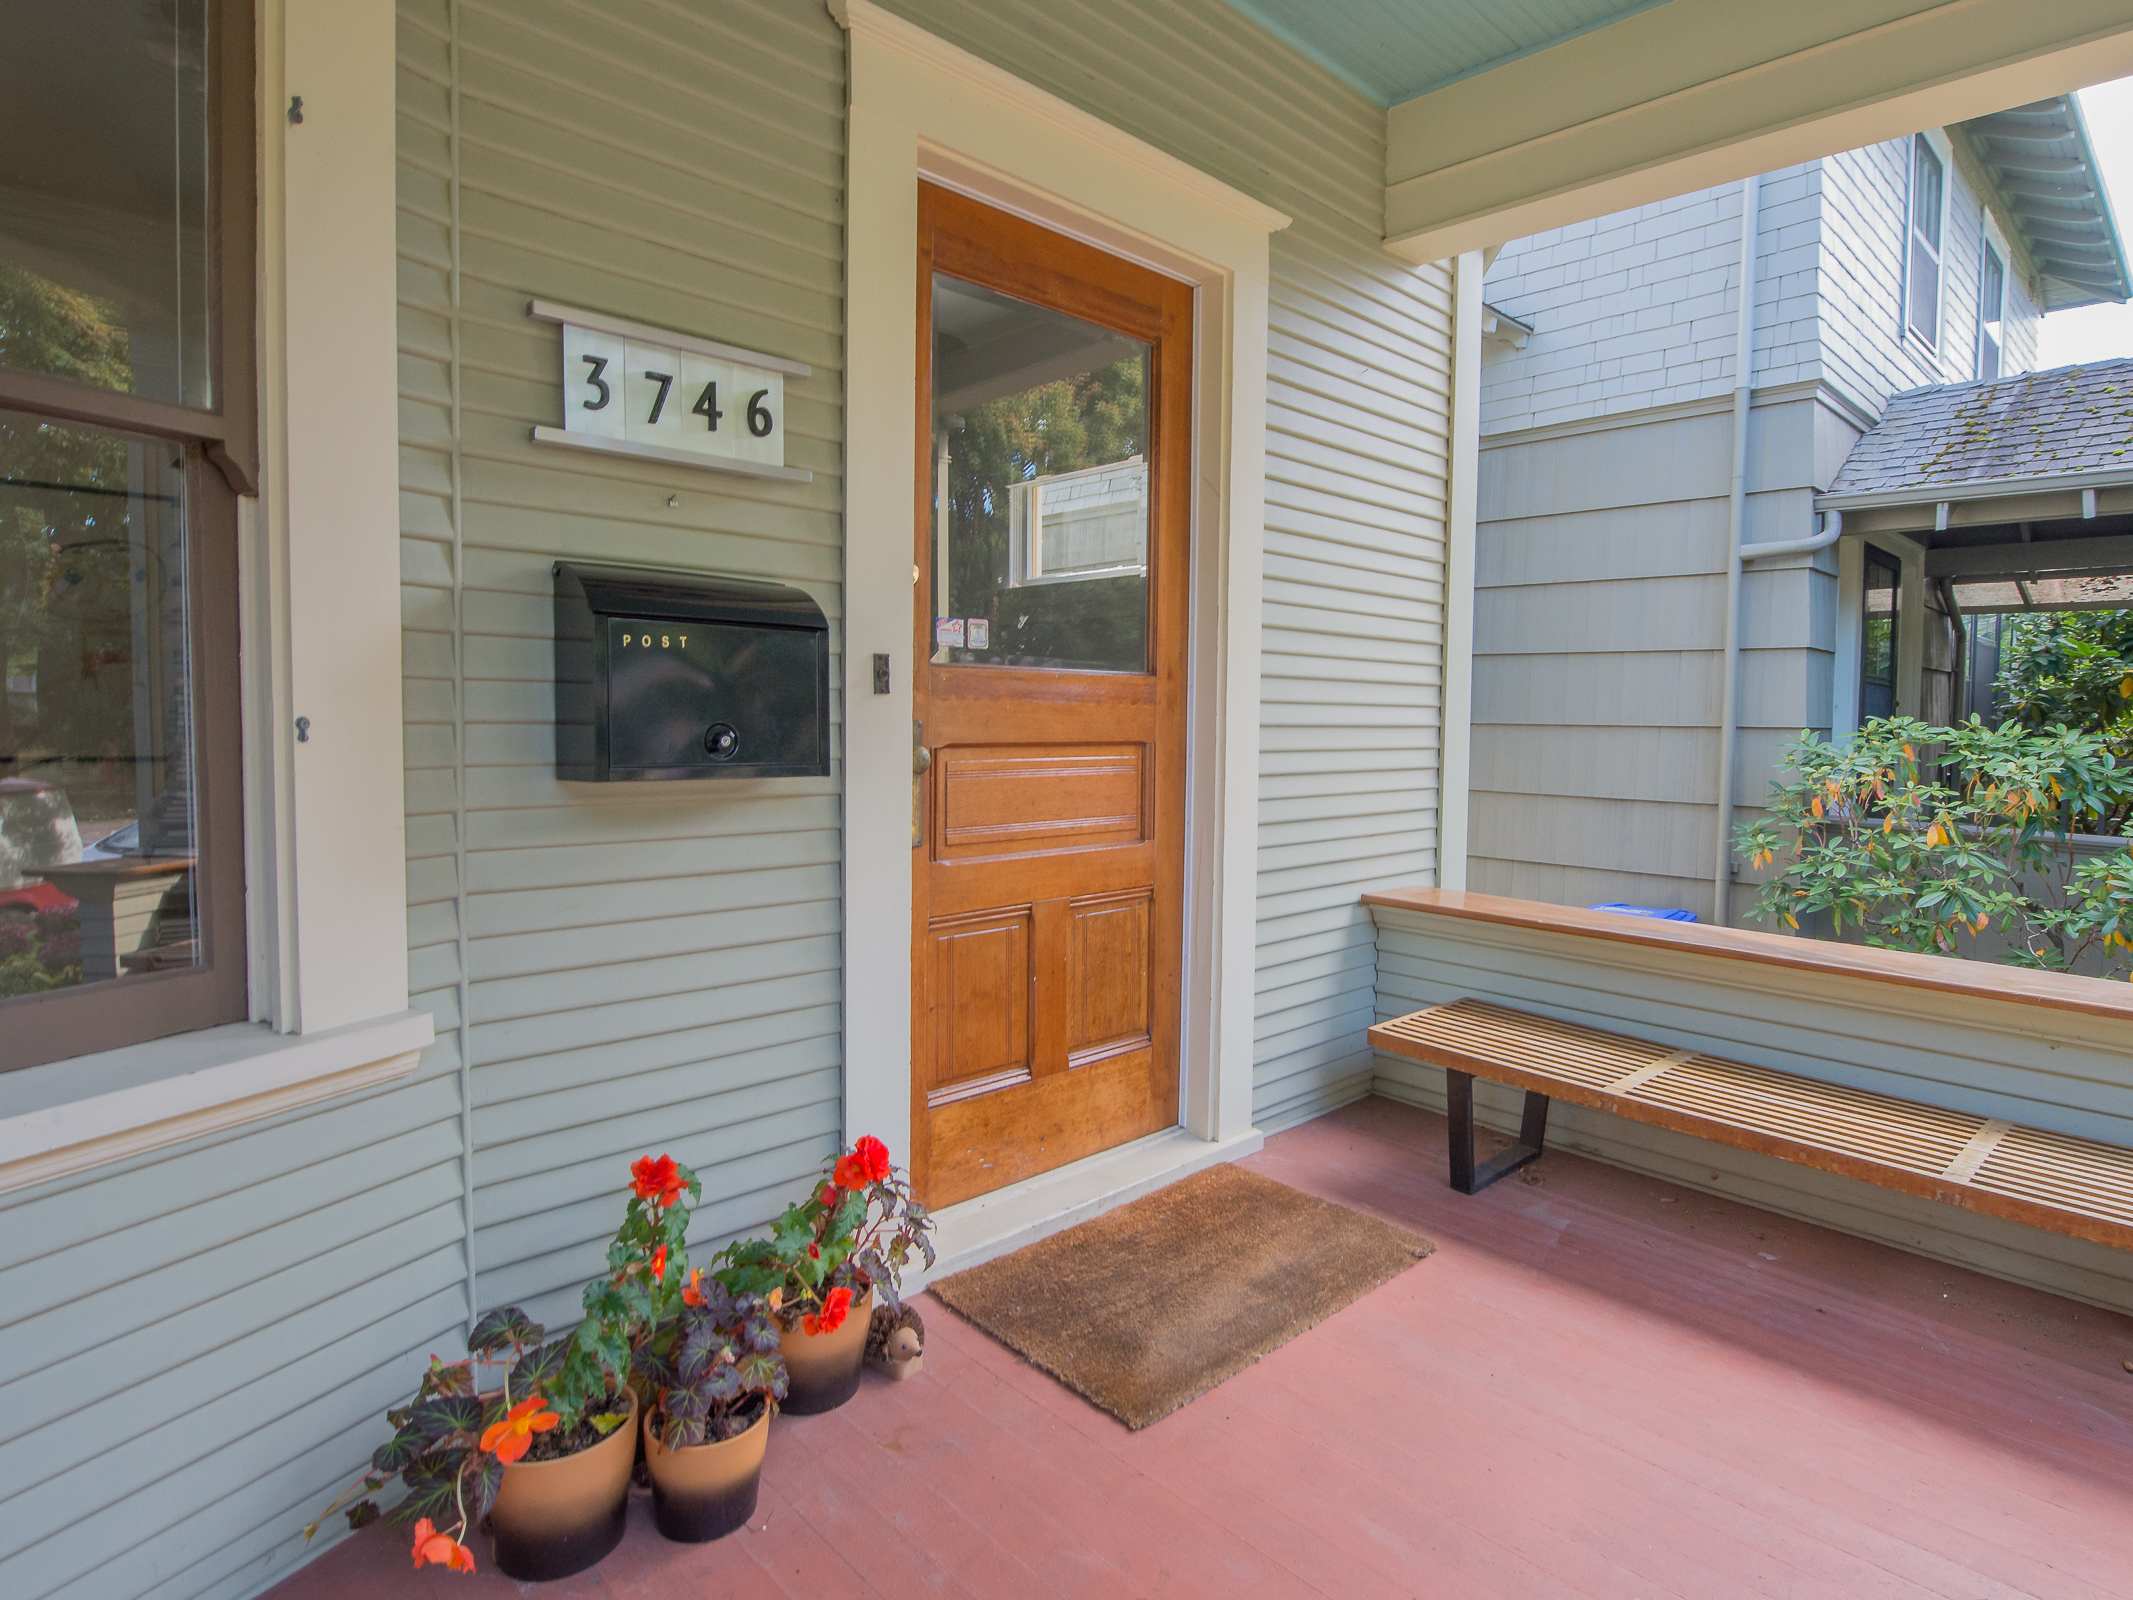 3746 SE Washington, Portland OR (click for details)